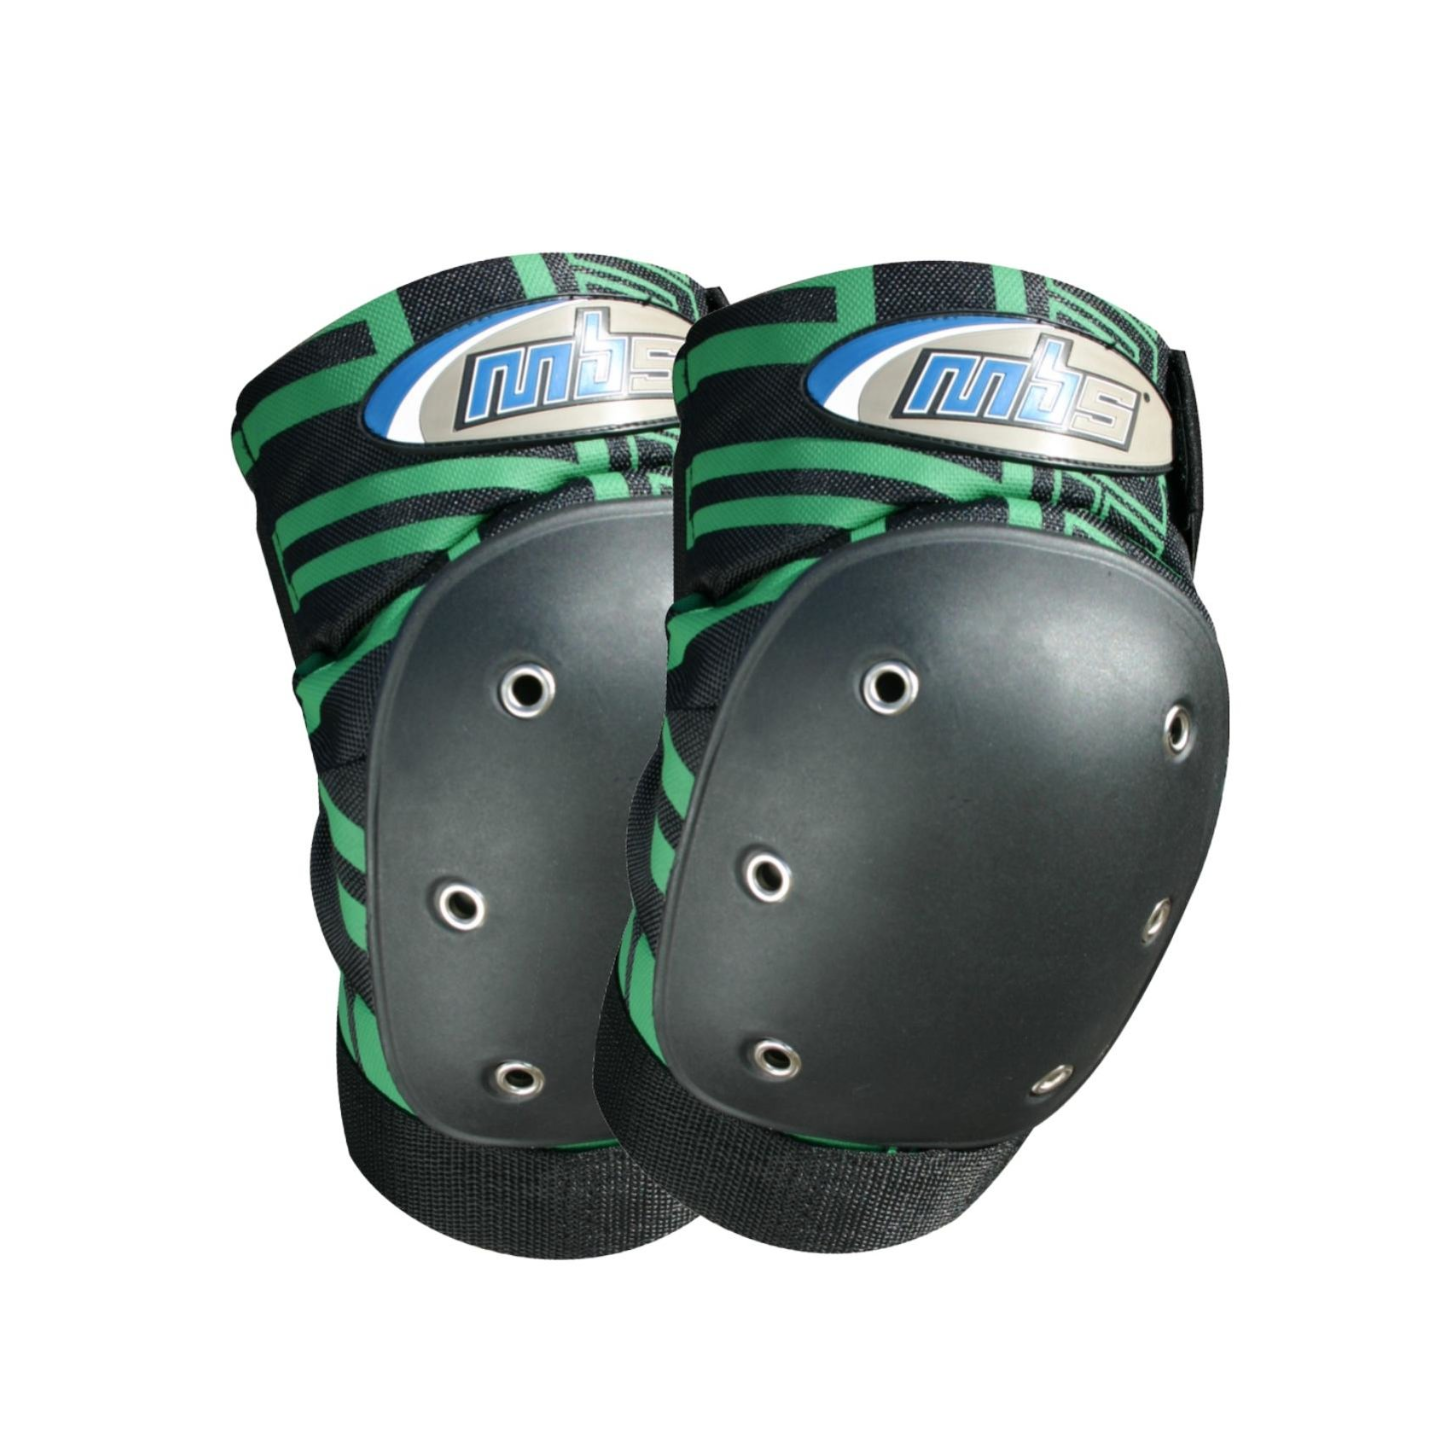 Image of MBS Pro Knee Pads - 1 Pair - 4 Sizes/Colors